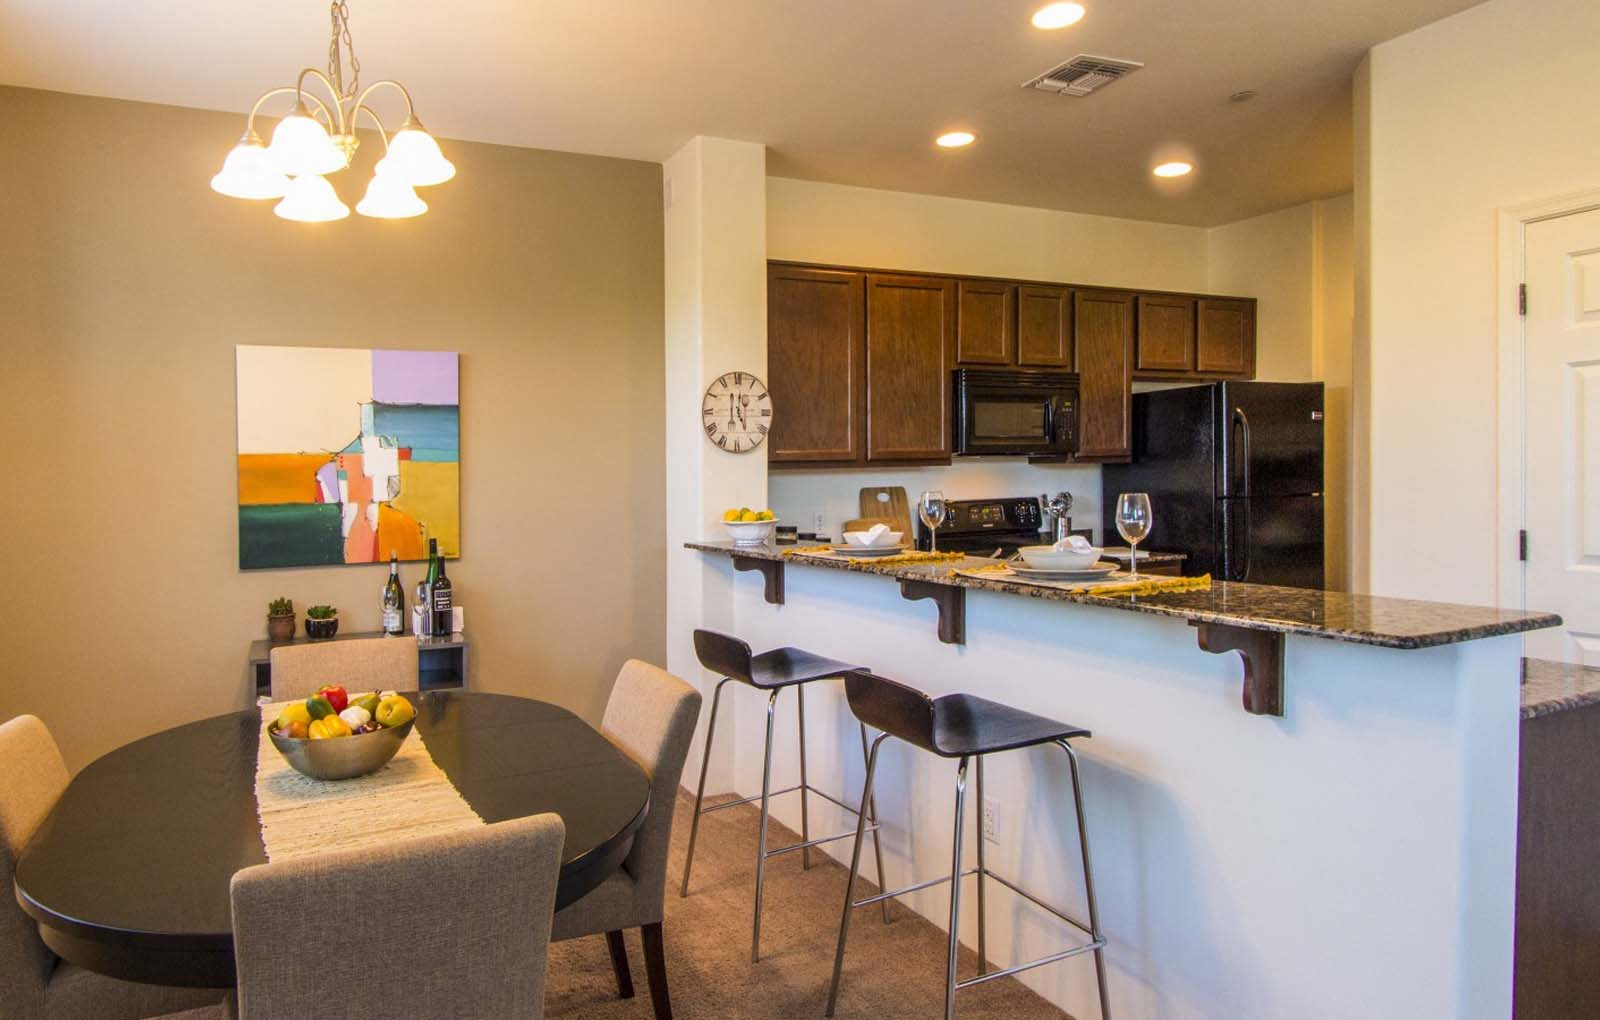 Dining area & breakfast bar at Galeria Del Rio Townhomes in Tucson, AZ